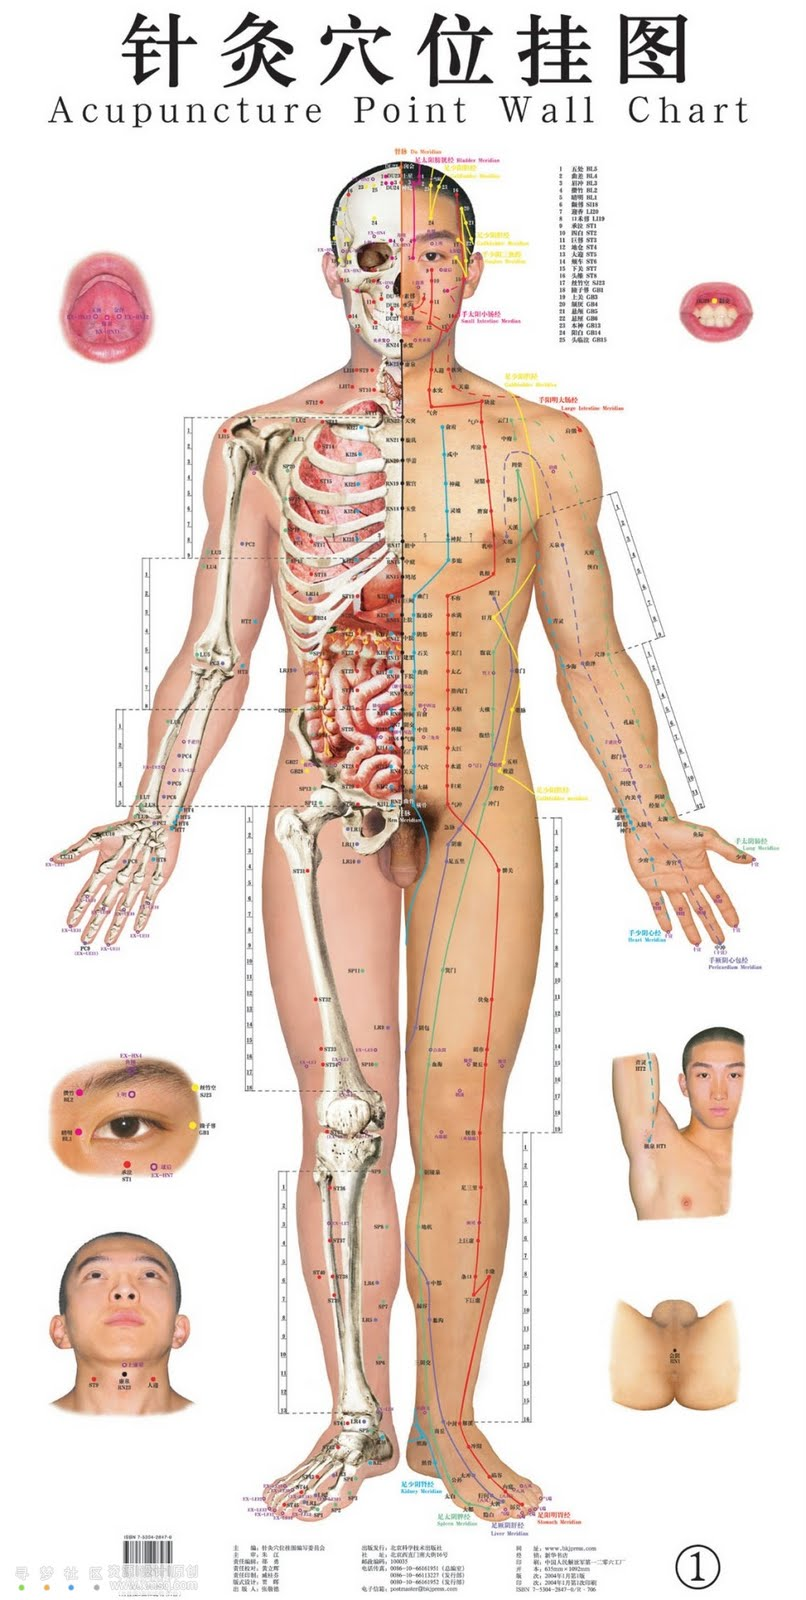 Acupuncture masters how an acupuncture point diagram helps acupuncture was exposed in prehistoric figurines extra than 3000 living ago this performance truly involves stabbing bony ringing needles hooked on skin ccuart Image collections